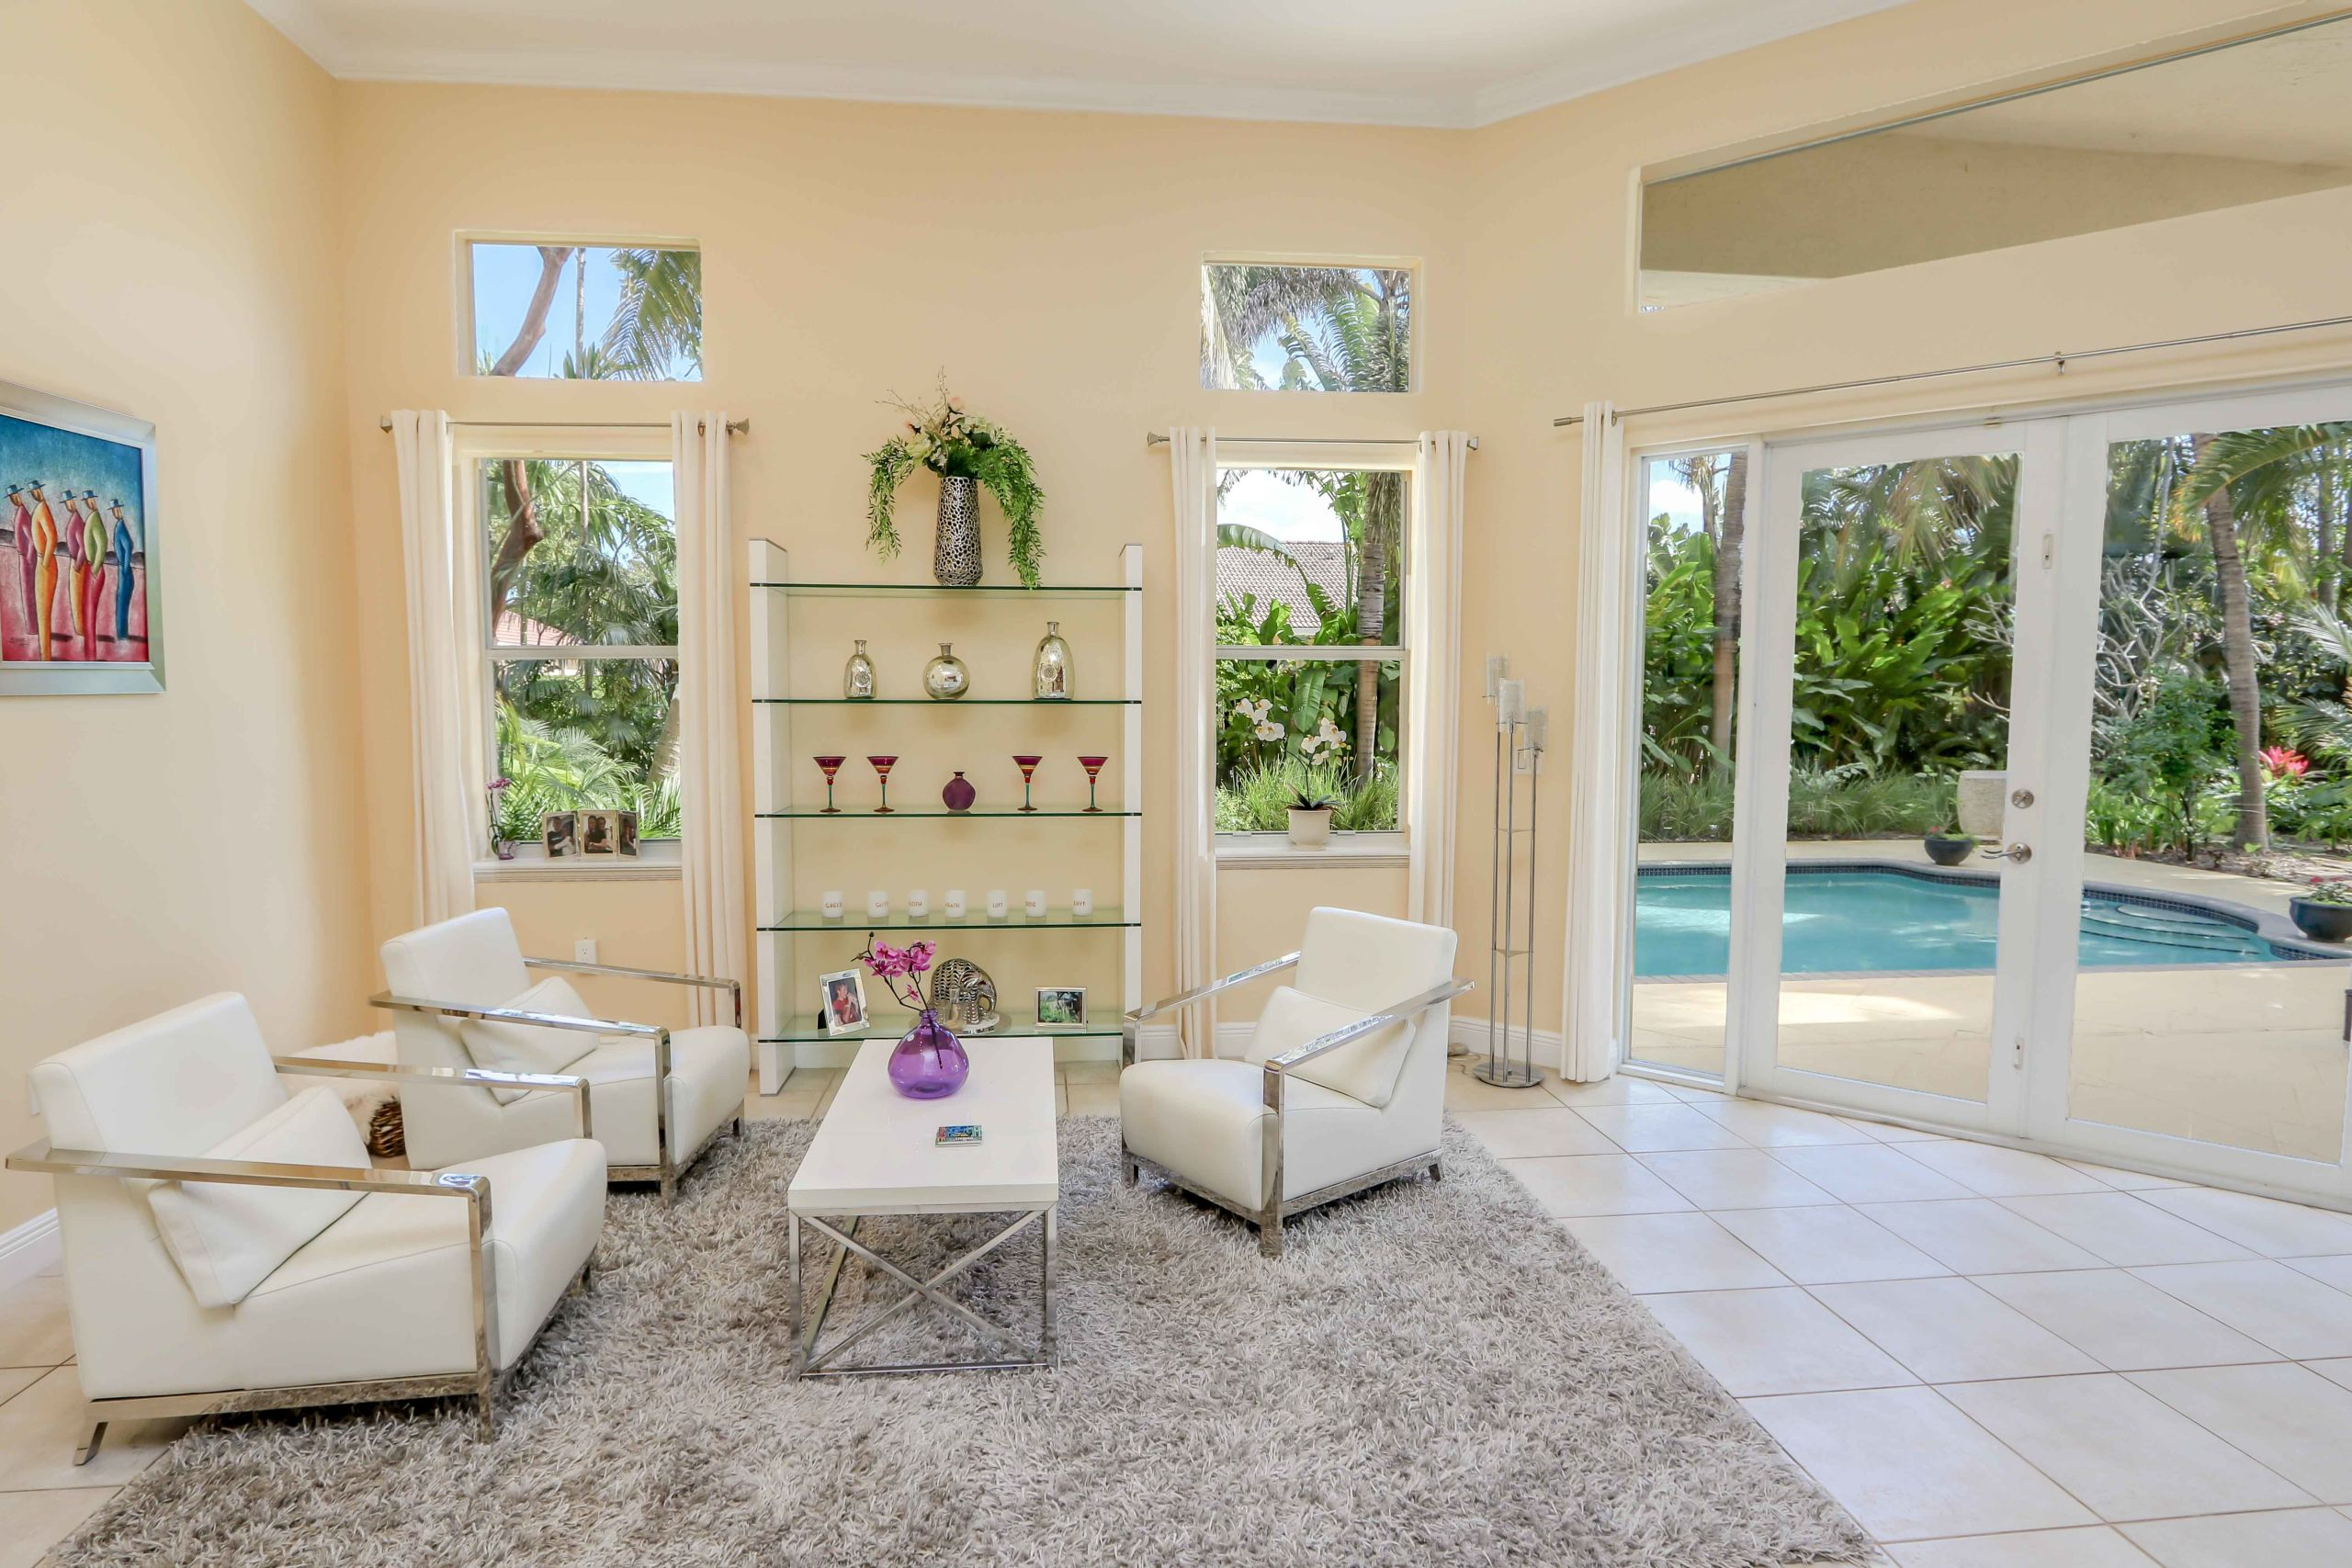 Real Estate in Pinecrest, Palmetto Bay, Coral Gables